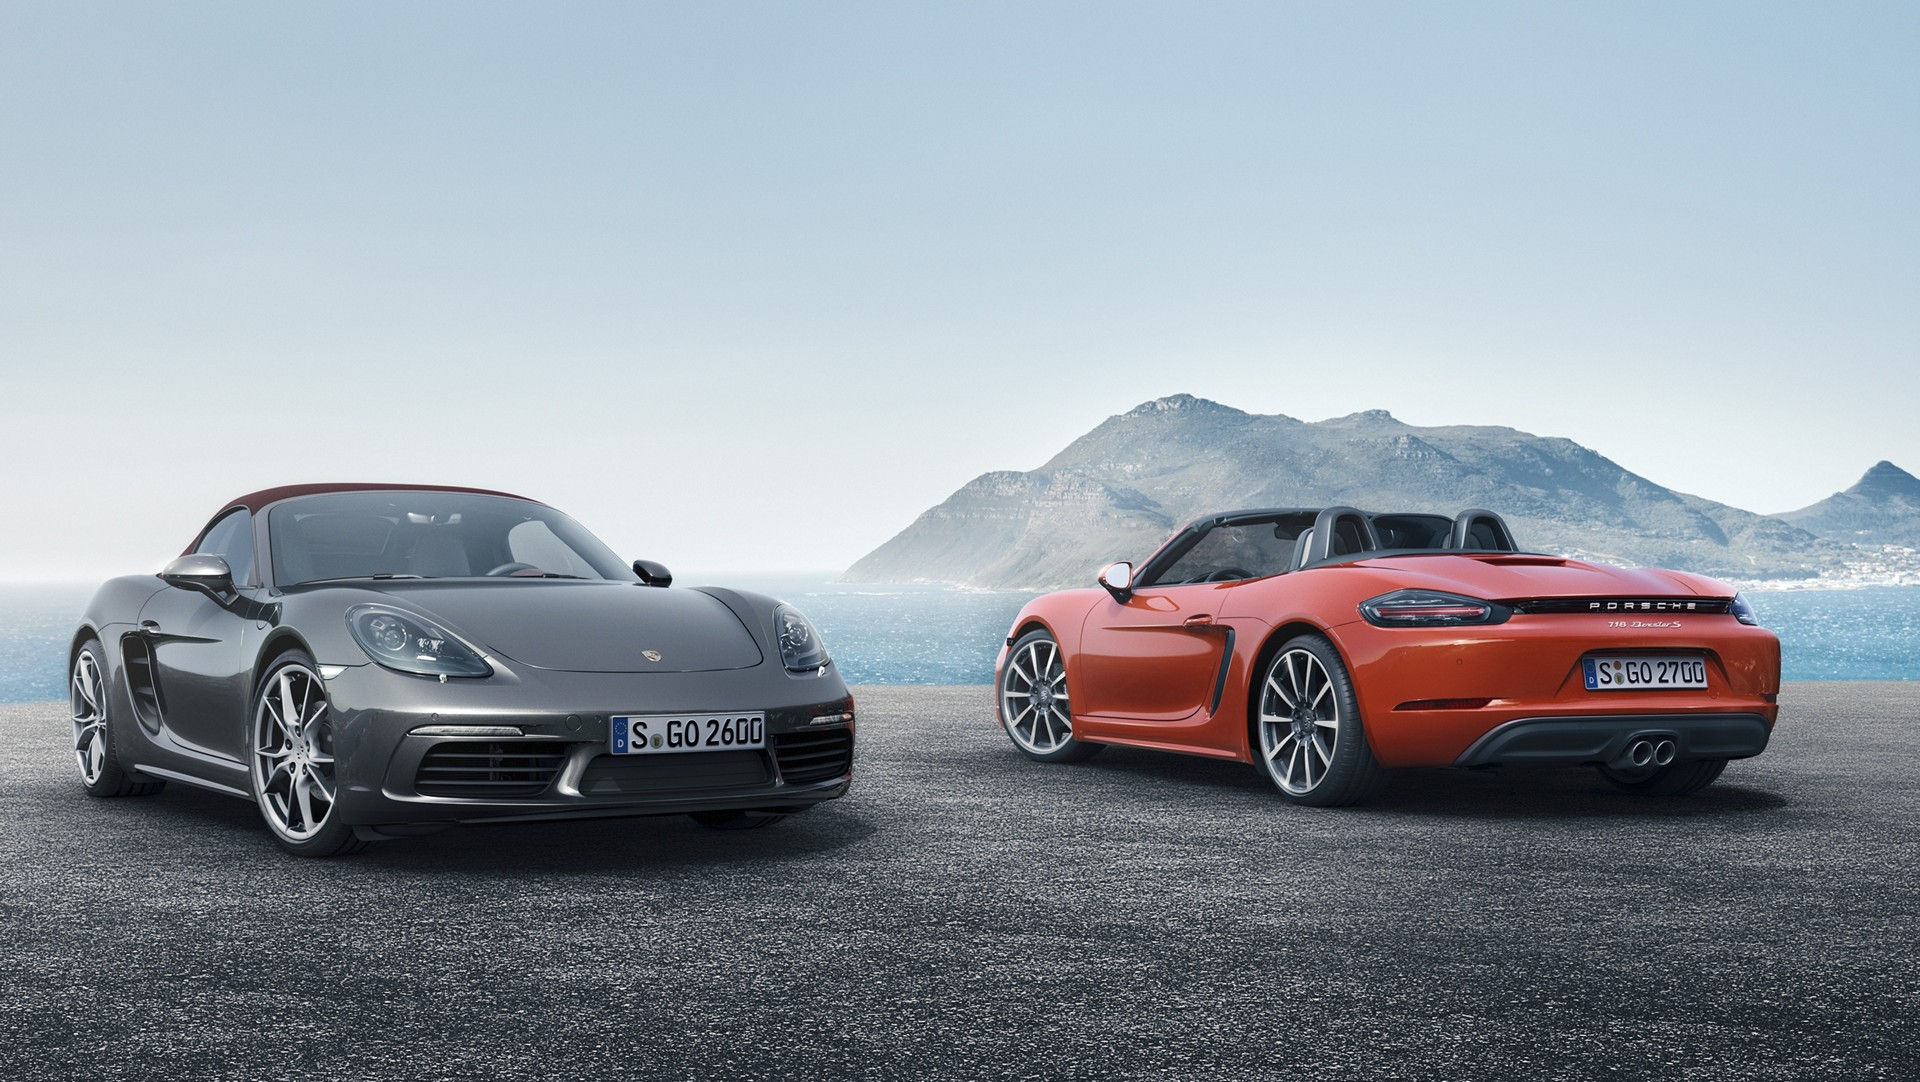 718 Boxster, 718 Boxster S © Dr. Ing. h.c. F. Porsche AG